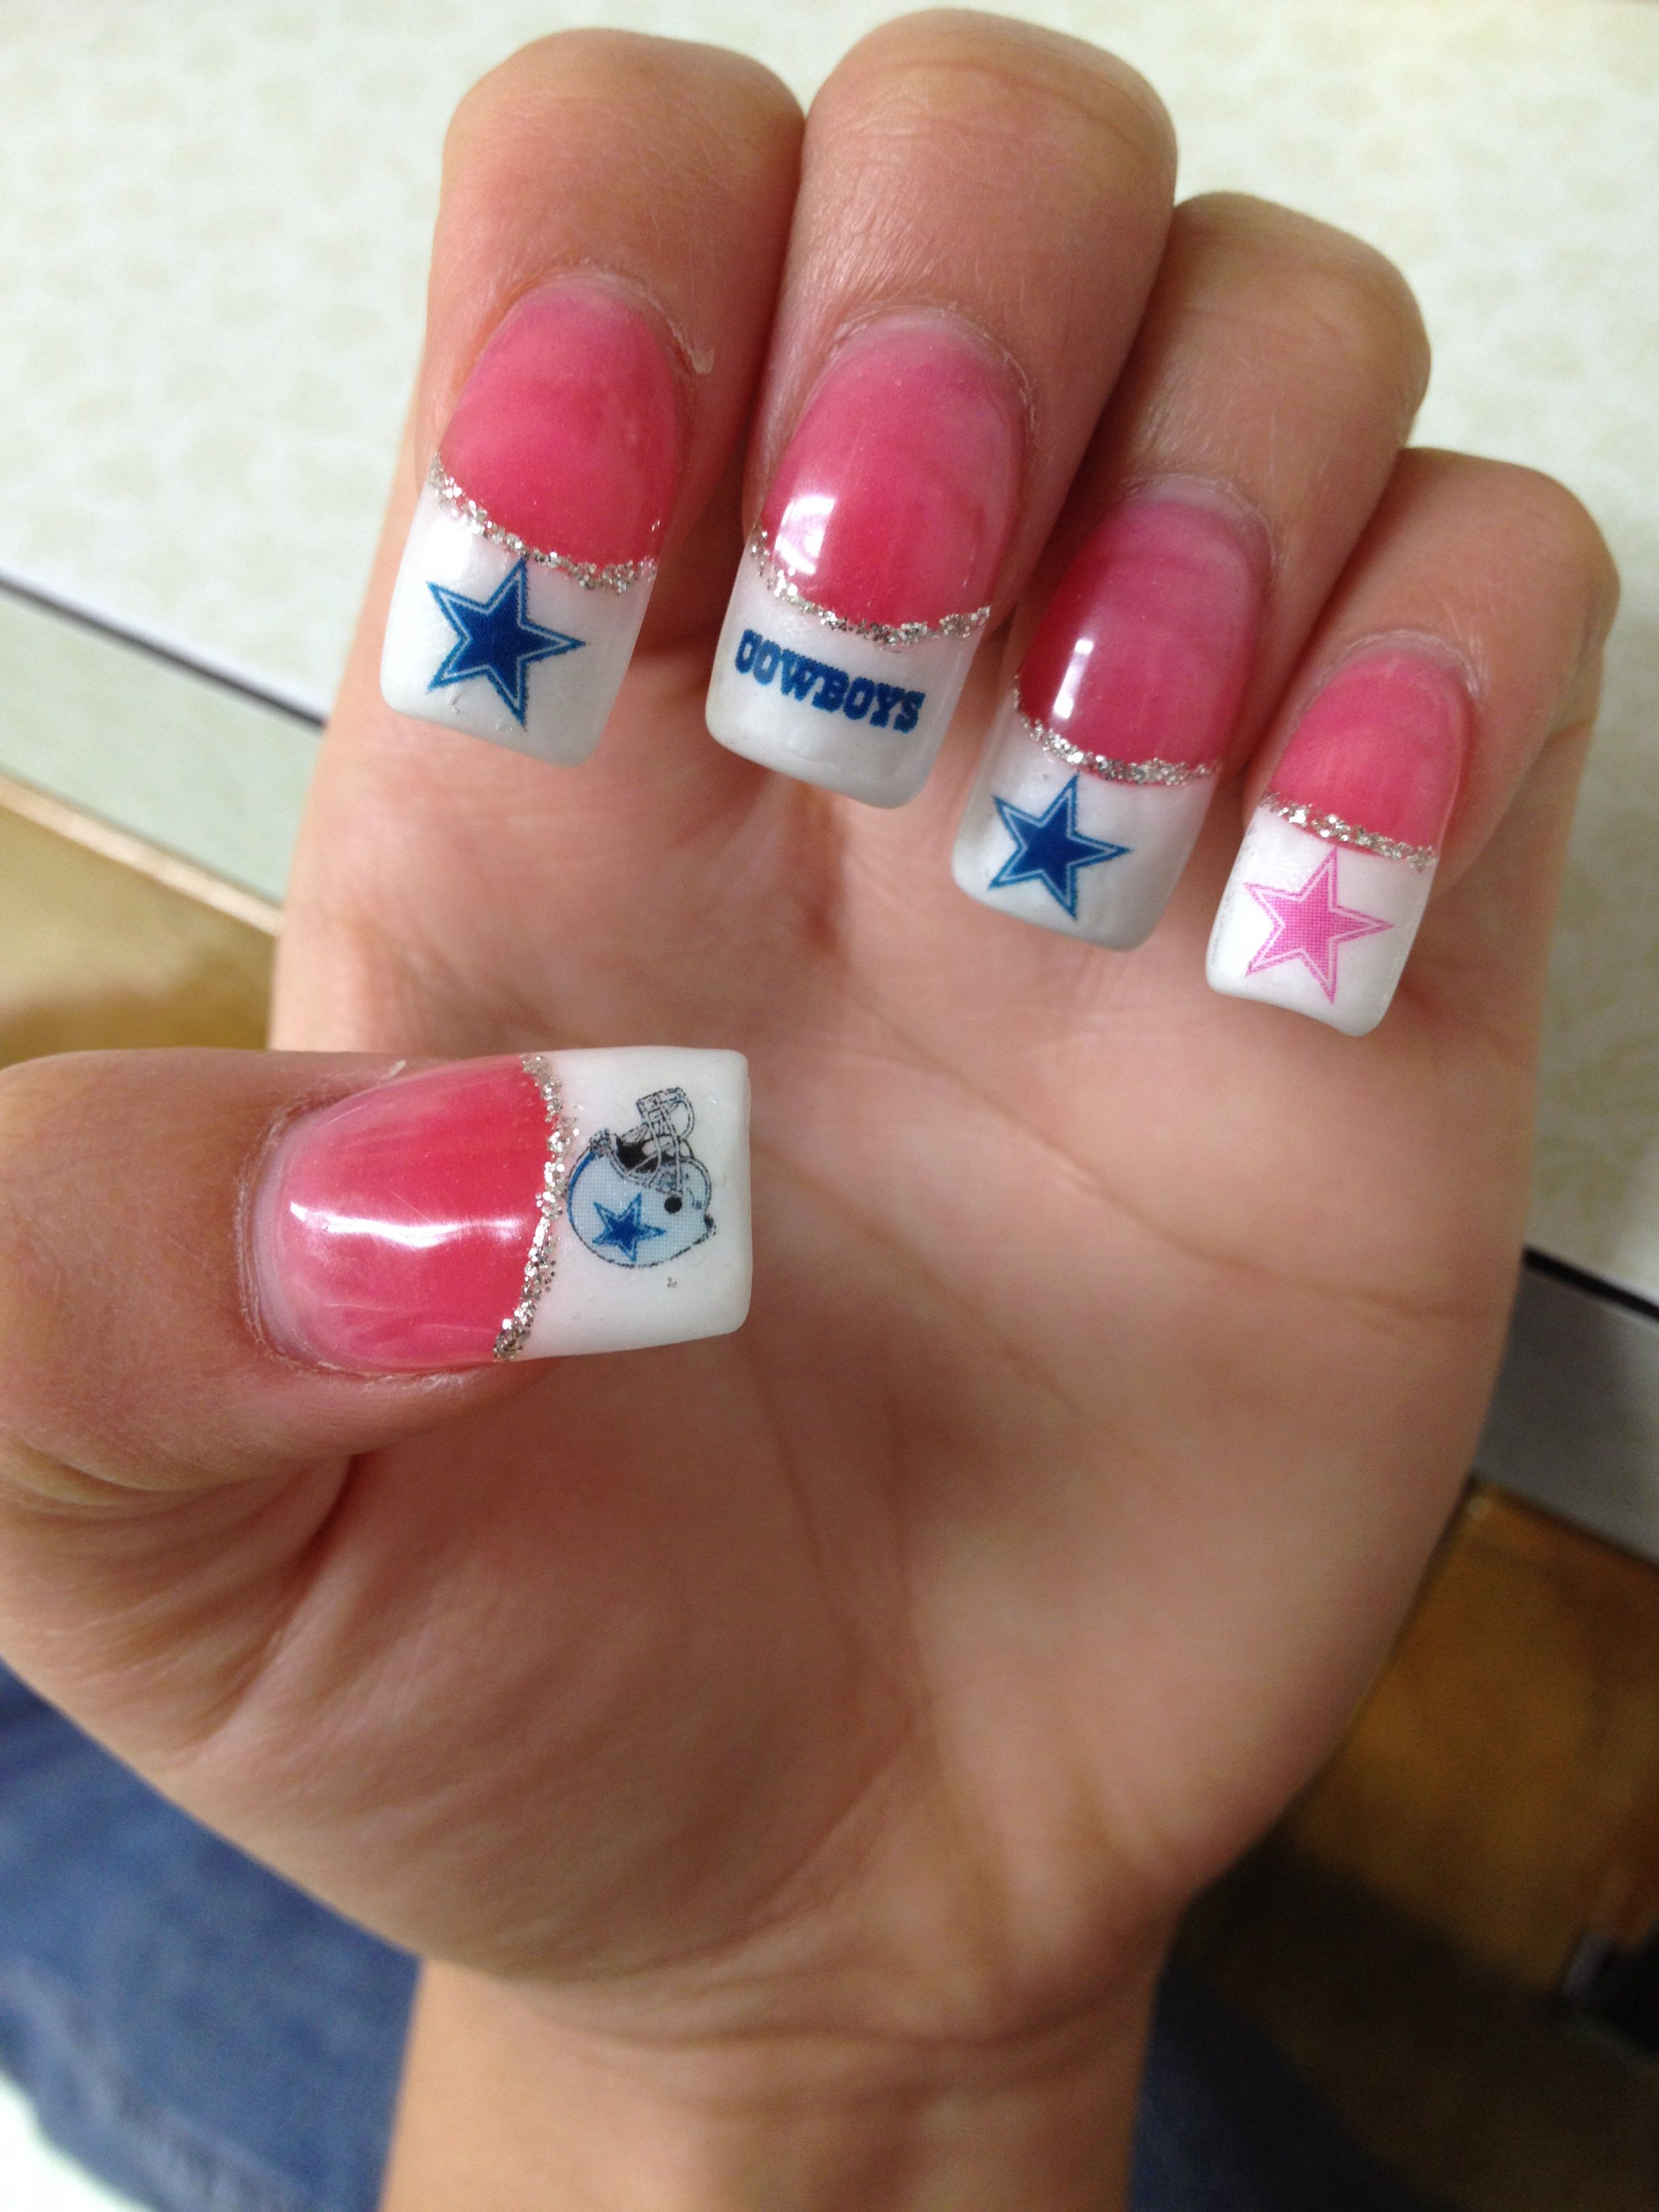 Dallas cowboys nails | My favorite Dallas cowboys items | Pinterest ...